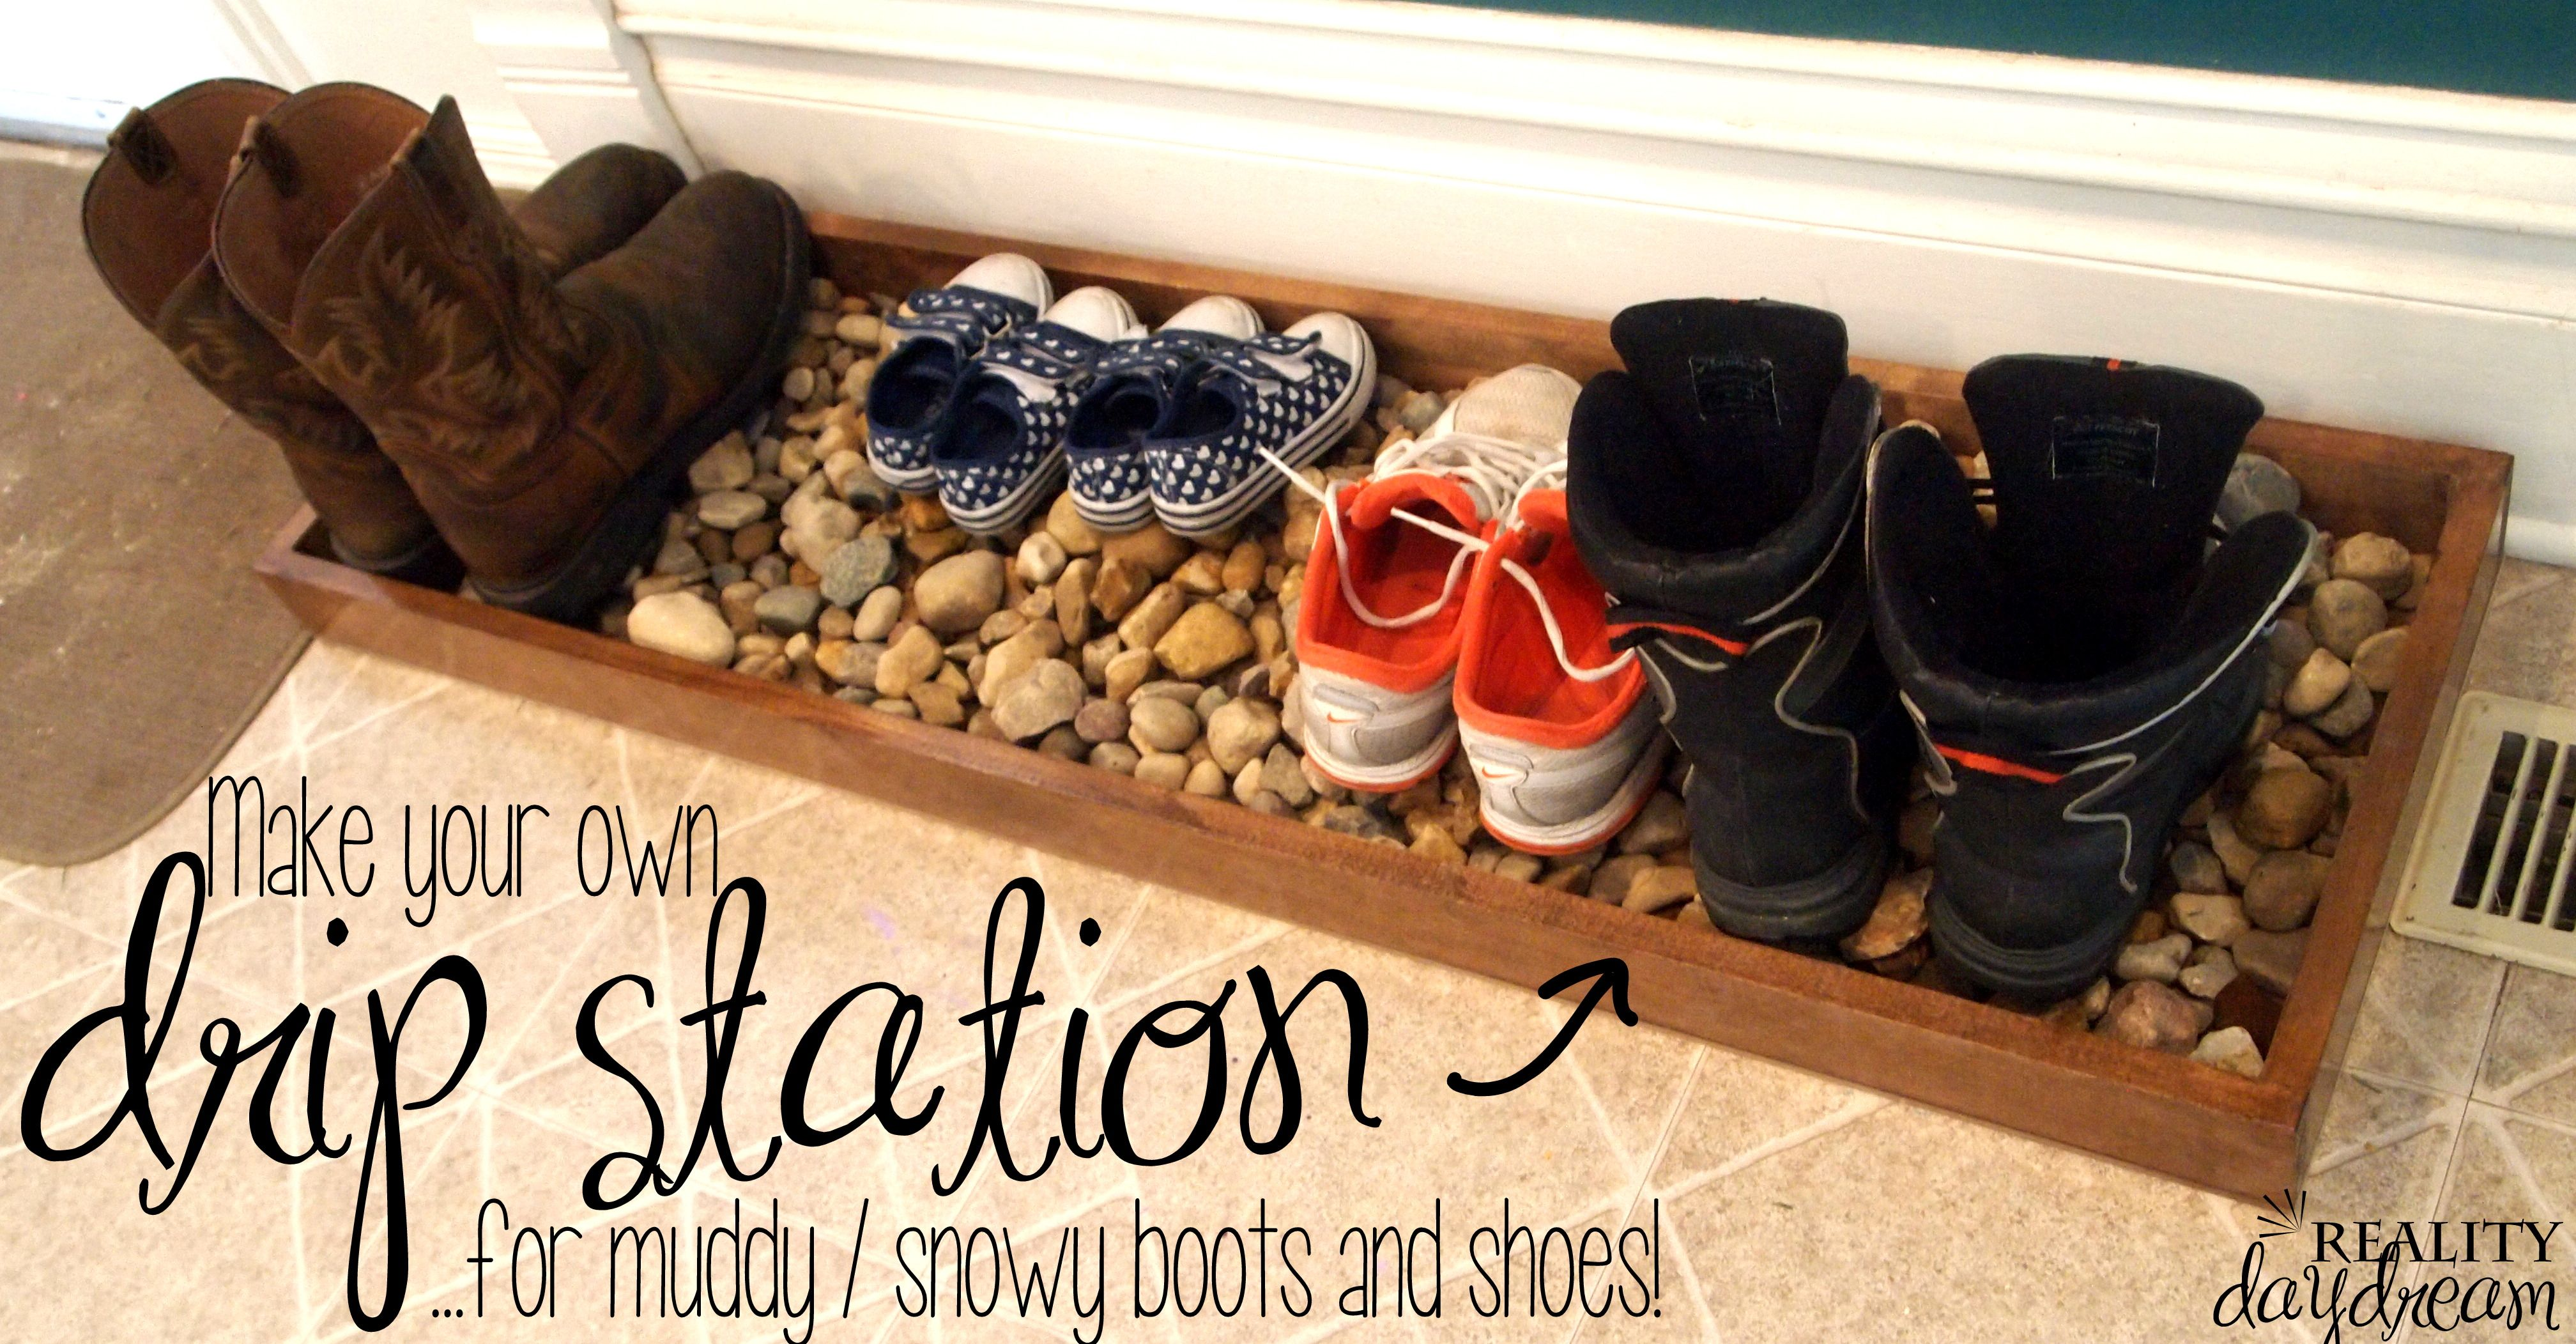 Diy Drip Tray For Wet And Muddy Shoes Reality Day Dream Shoe Organizer Shoe Organization Diy Entryway Shoe Storage